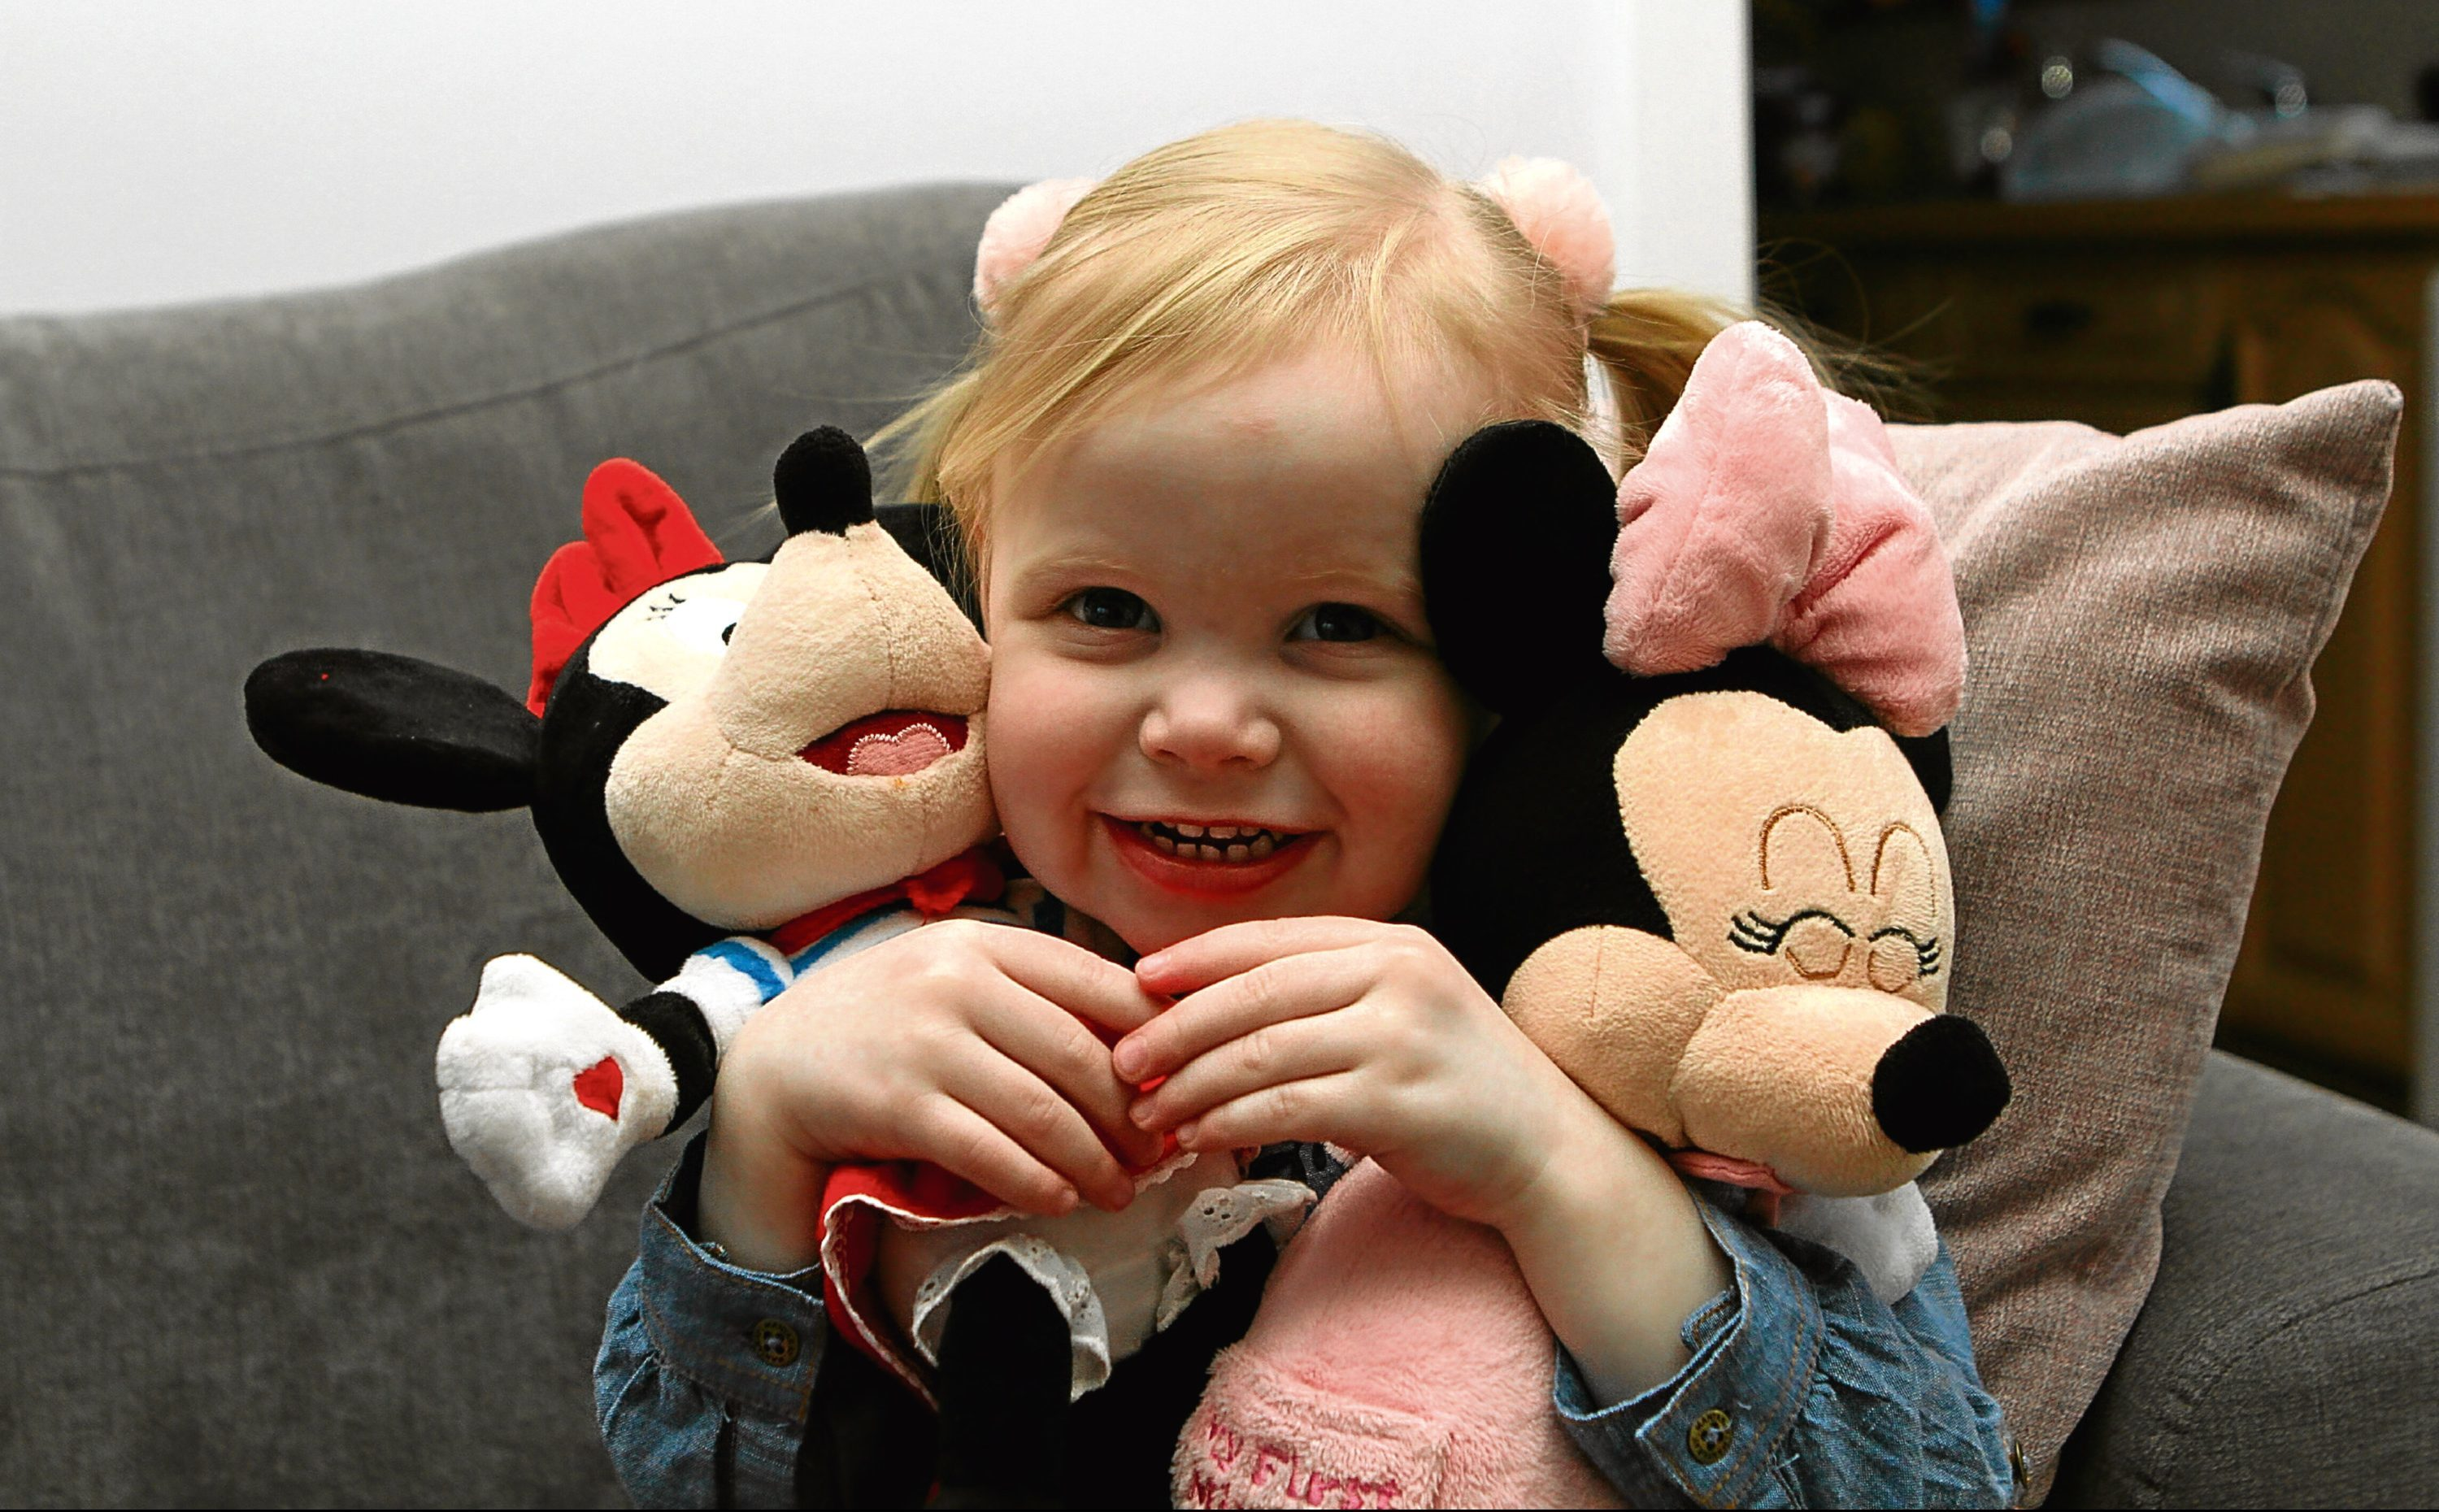 Little Zoe has been diagnosed with cystic fibrosis, a life-shortening condition